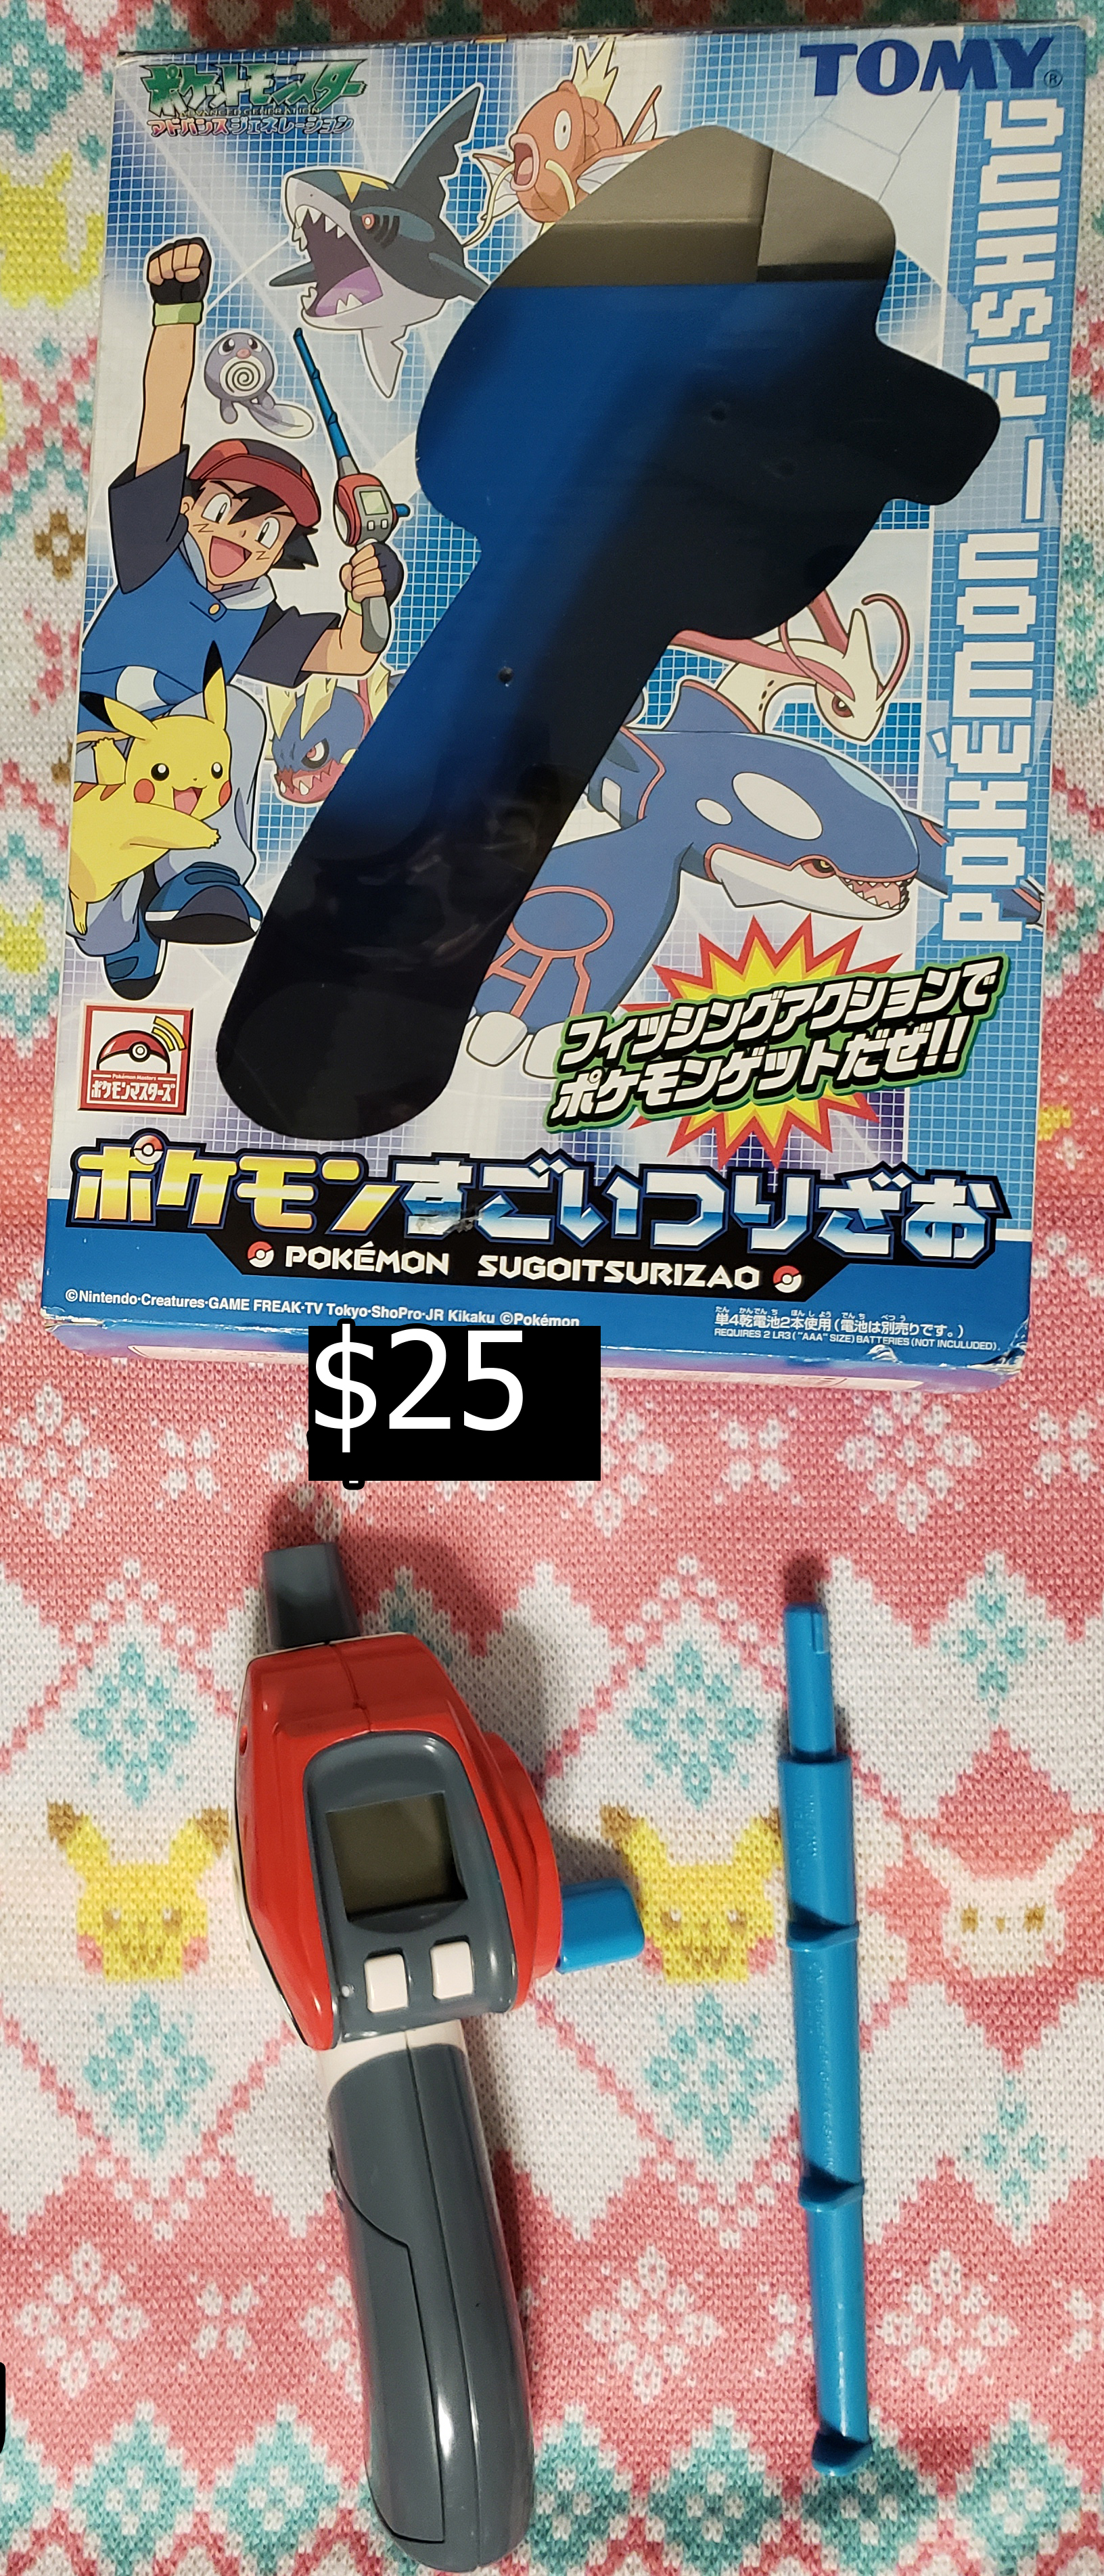 super rod has never been used, only taken out of box to take picture; batteries not included